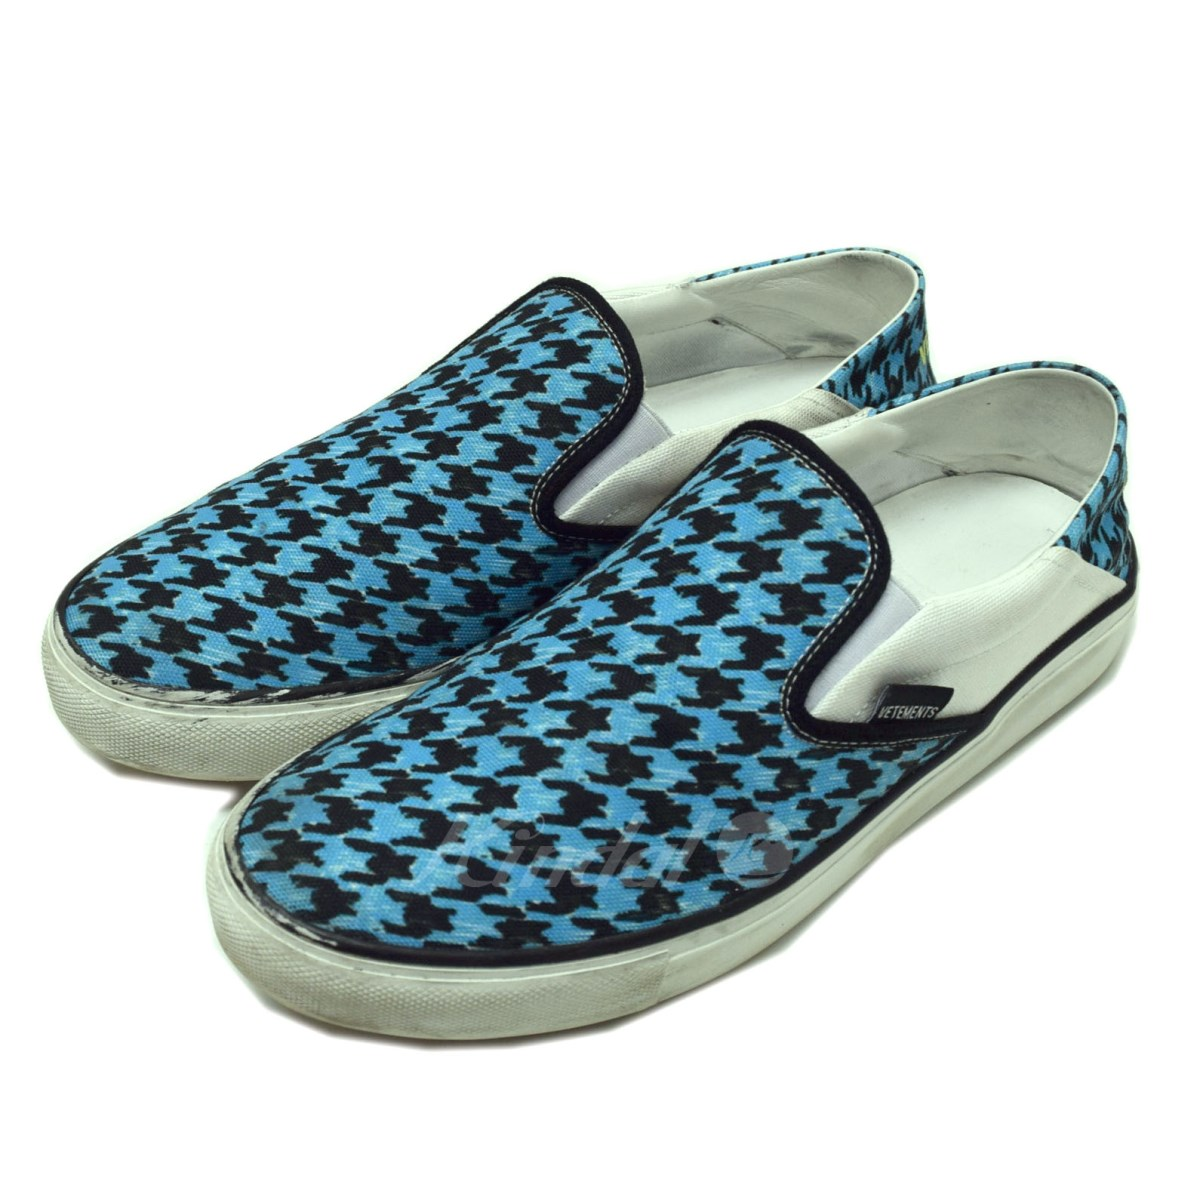 de923b4046a0 VETEMENTS 2018SS cross-woven lattice slip-ons light blue size  41 (ヴェトモン)